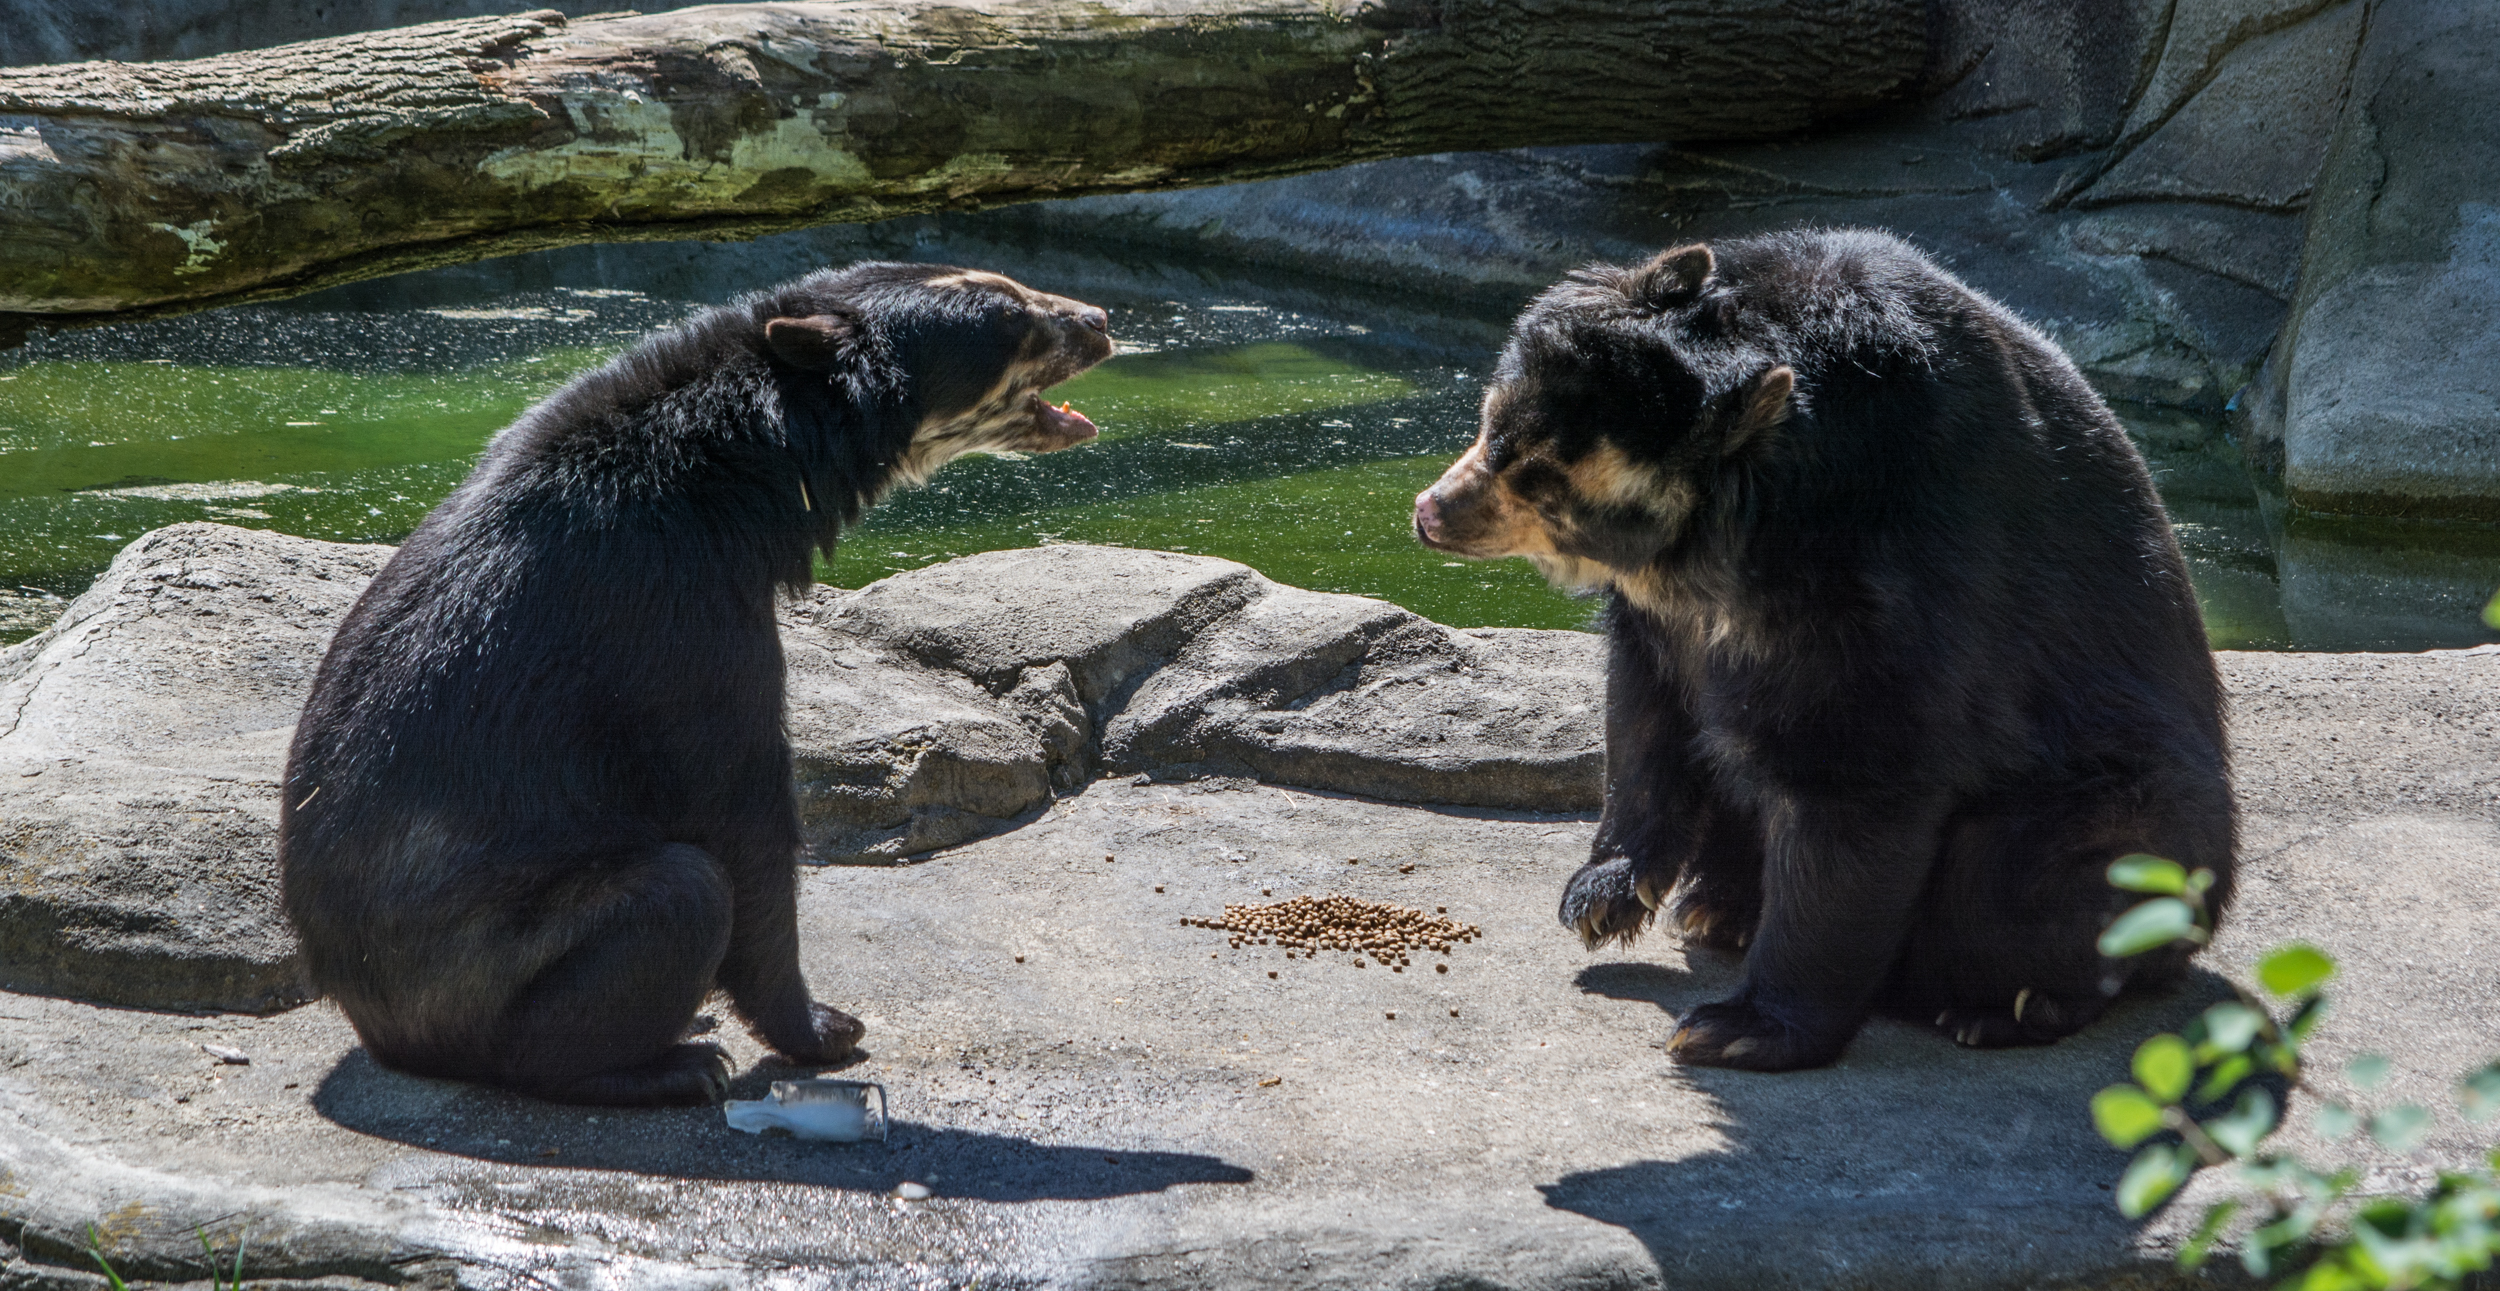 andean bear yeowling - Cleveland Zoo